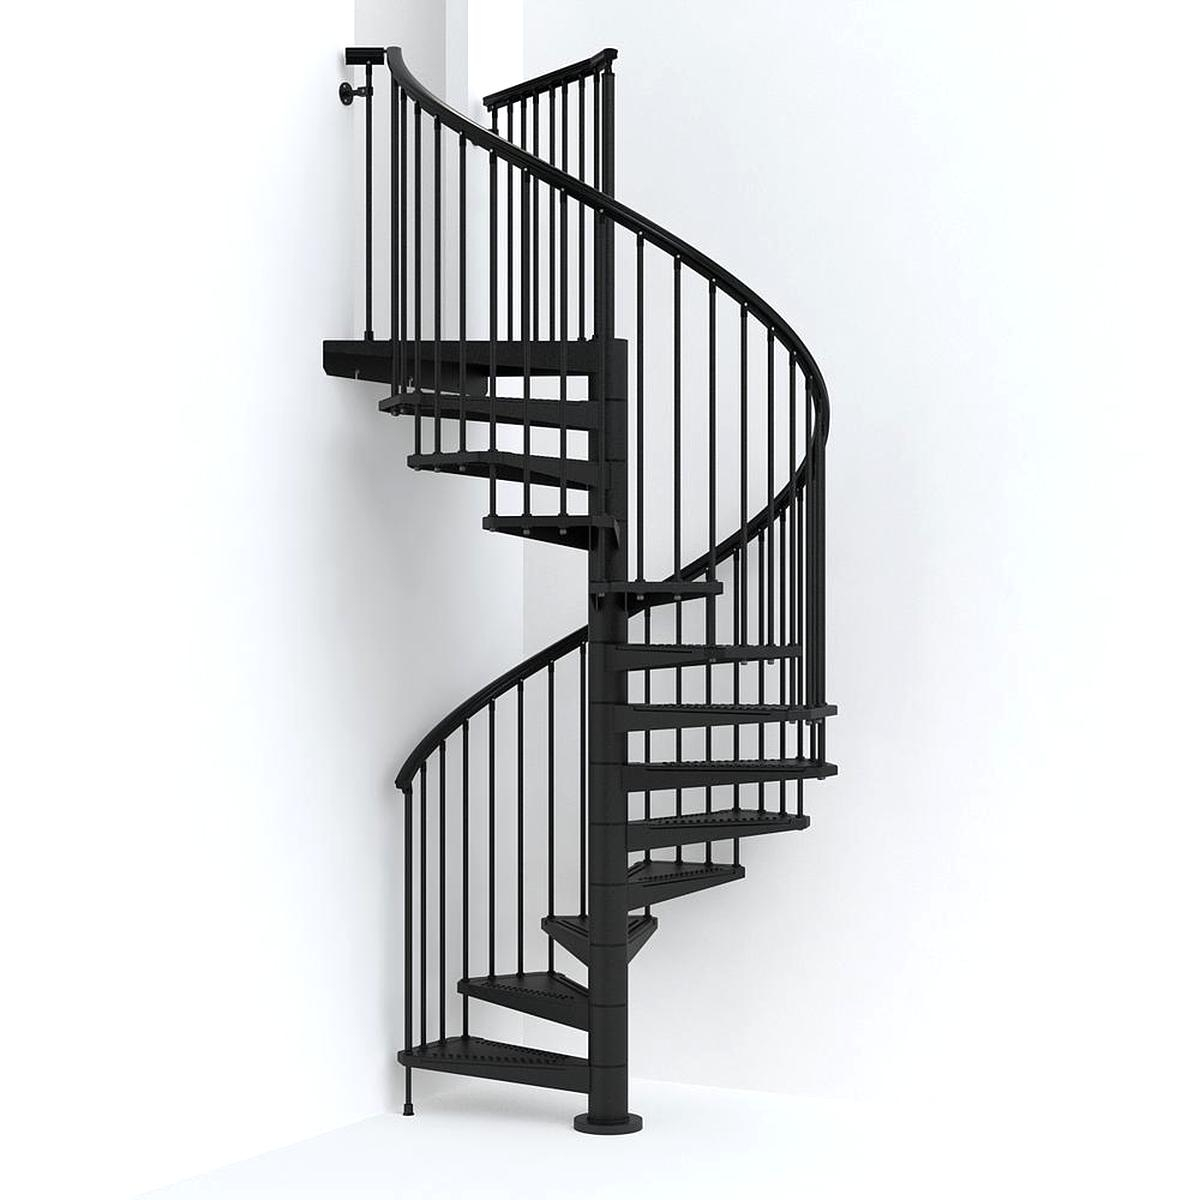 Spiral Staircase For Sale In Uk View 52 Bargains | Spiral Staircase For Sale